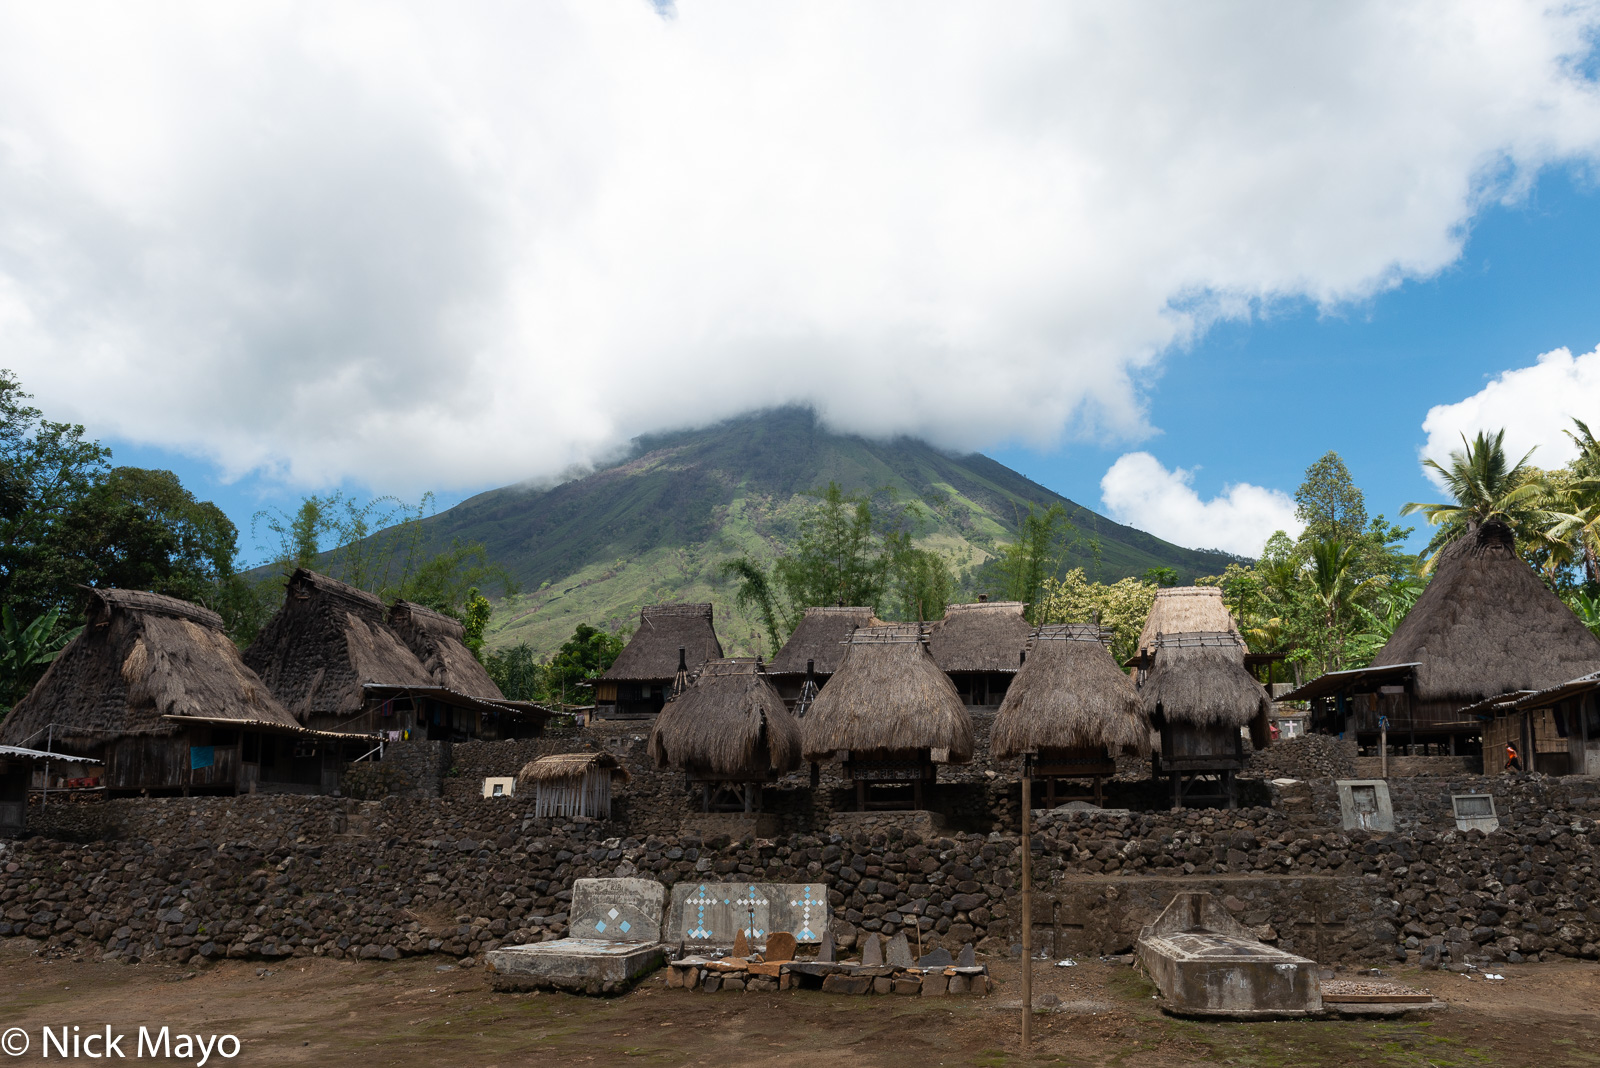 Animist Shrine, Flores, Grave, Indonesia, Roof, Thatch, Village, photo